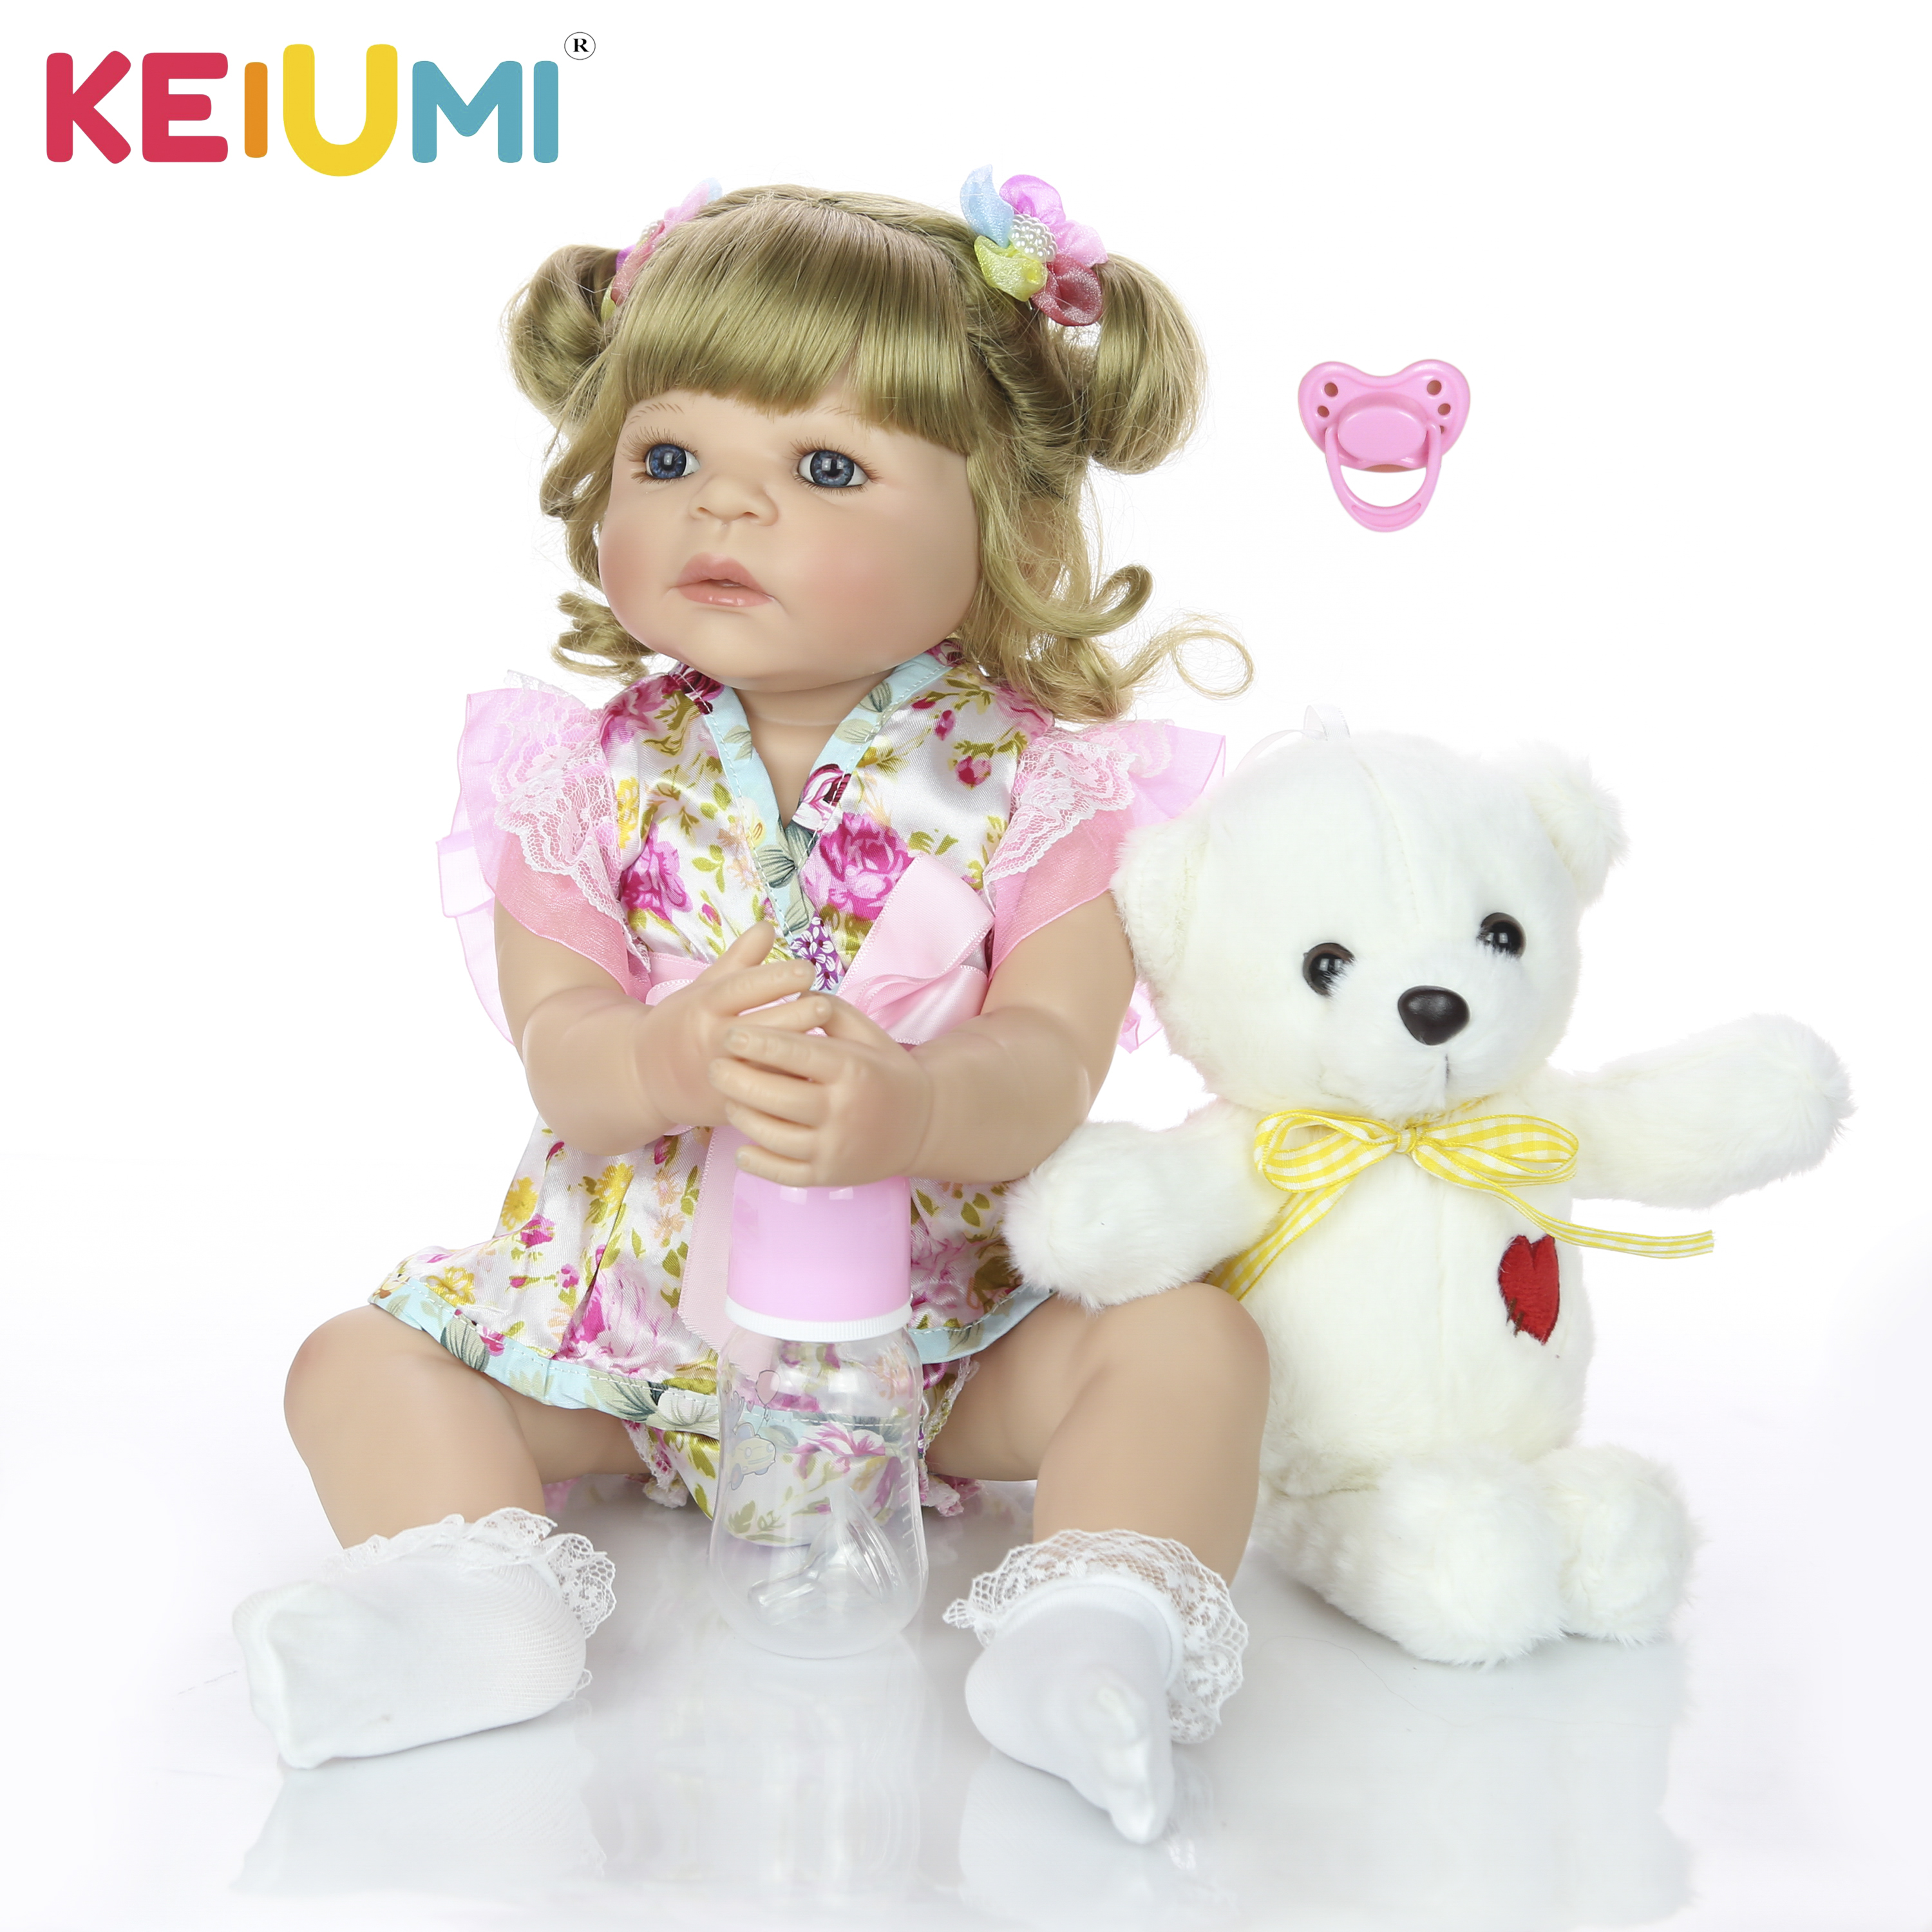 KEIUMI 22 Inch Silicone Full Body Reborn Doll Lifelike Fantacy Babies Doll Toy With Bear Plush Childrens Day Gift Bedtime PlayKEIUMI 22 Inch Silicone Full Body Reborn Doll Lifelike Fantacy Babies Doll Toy With Bear Plush Childrens Day Gift Bedtime Play